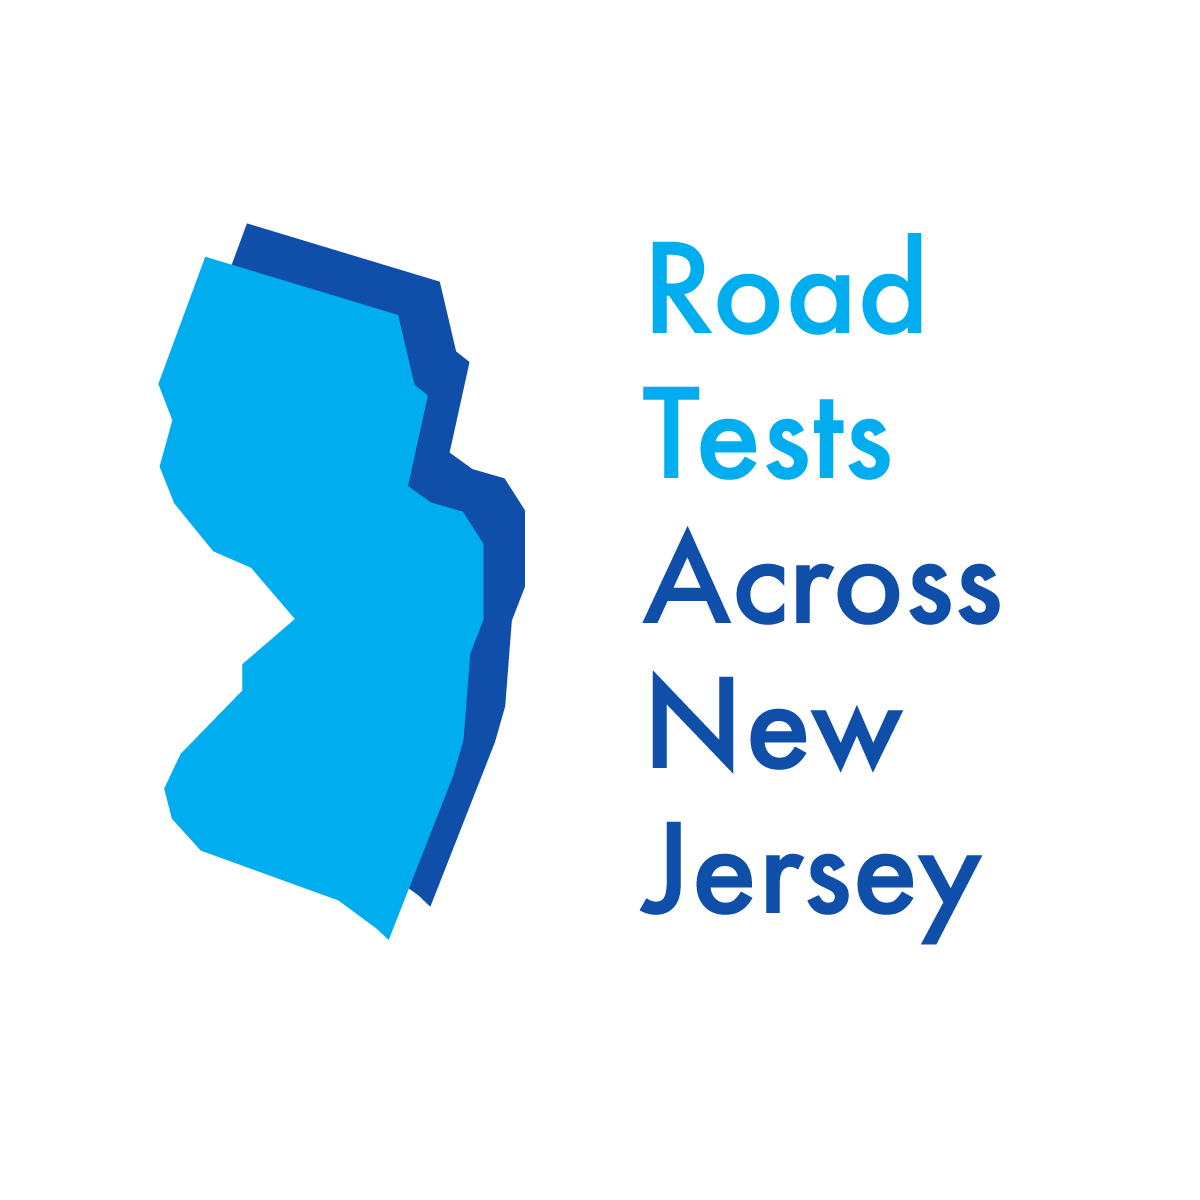 Car and Driver for New Jersey Driver's License Road Test